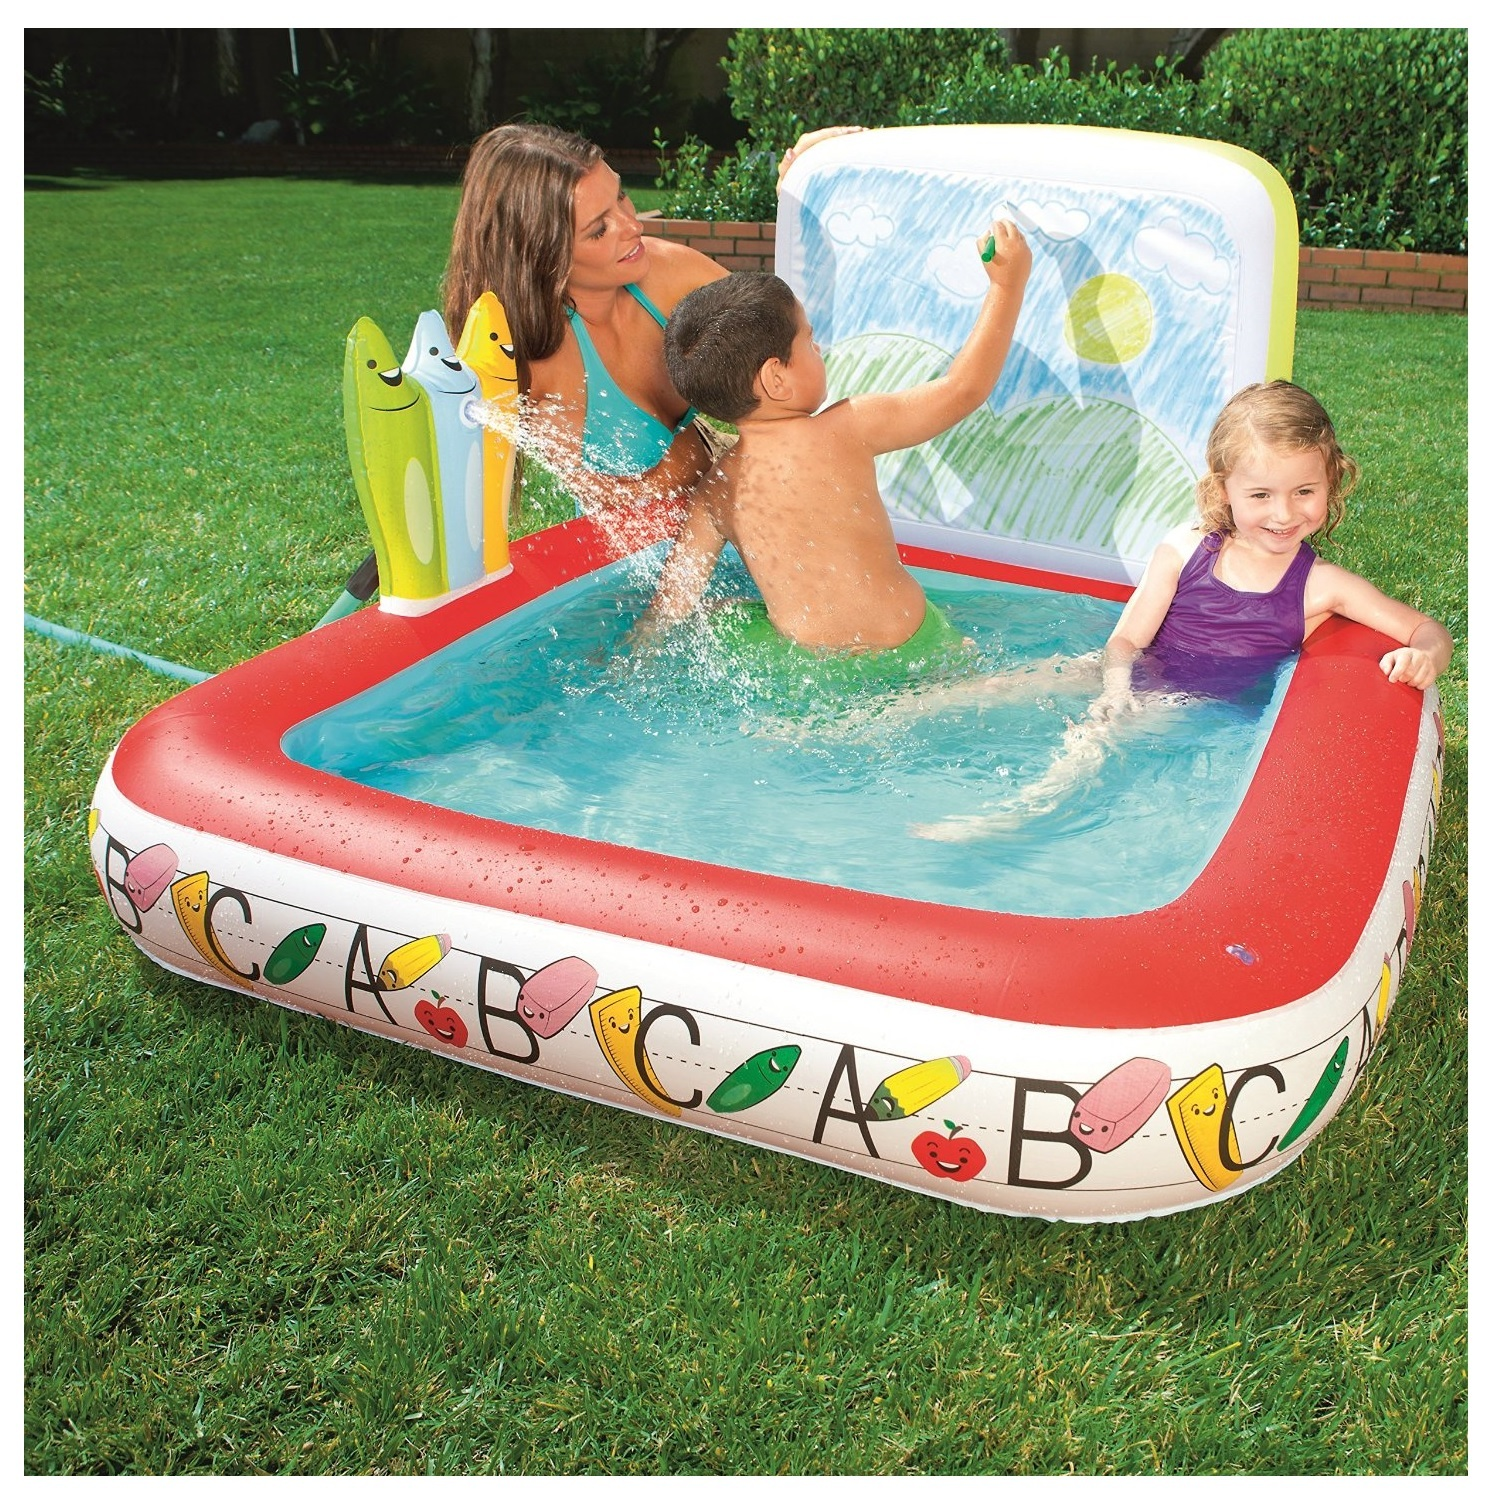 Unique outdoor baby toys pics children toys ideas How to draw swimming pool water